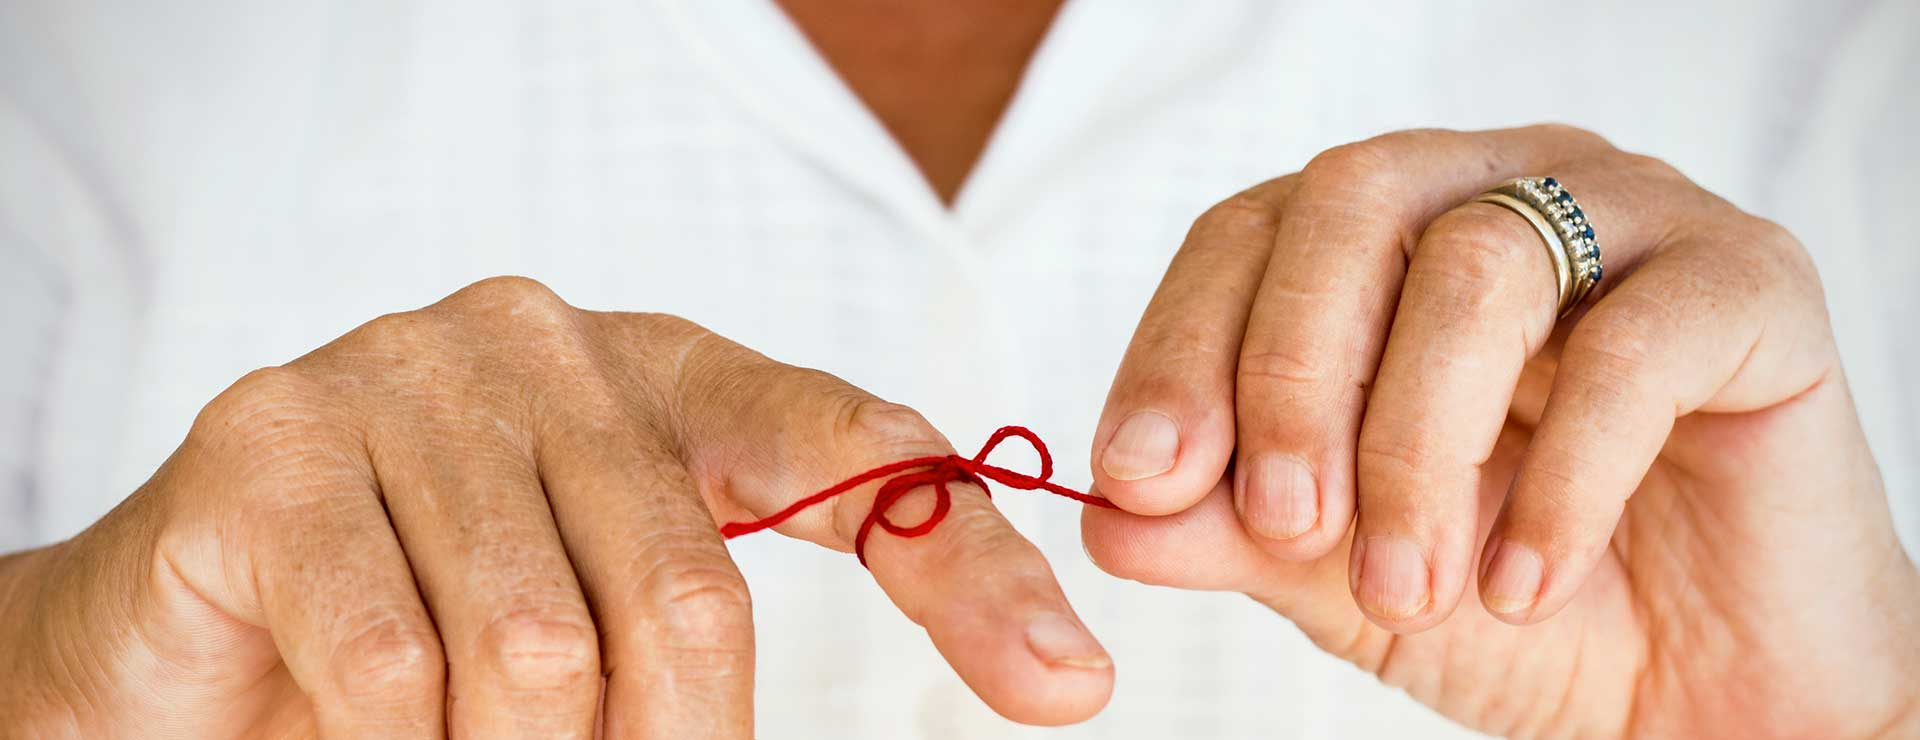 A red string tied around a finger as a reminder